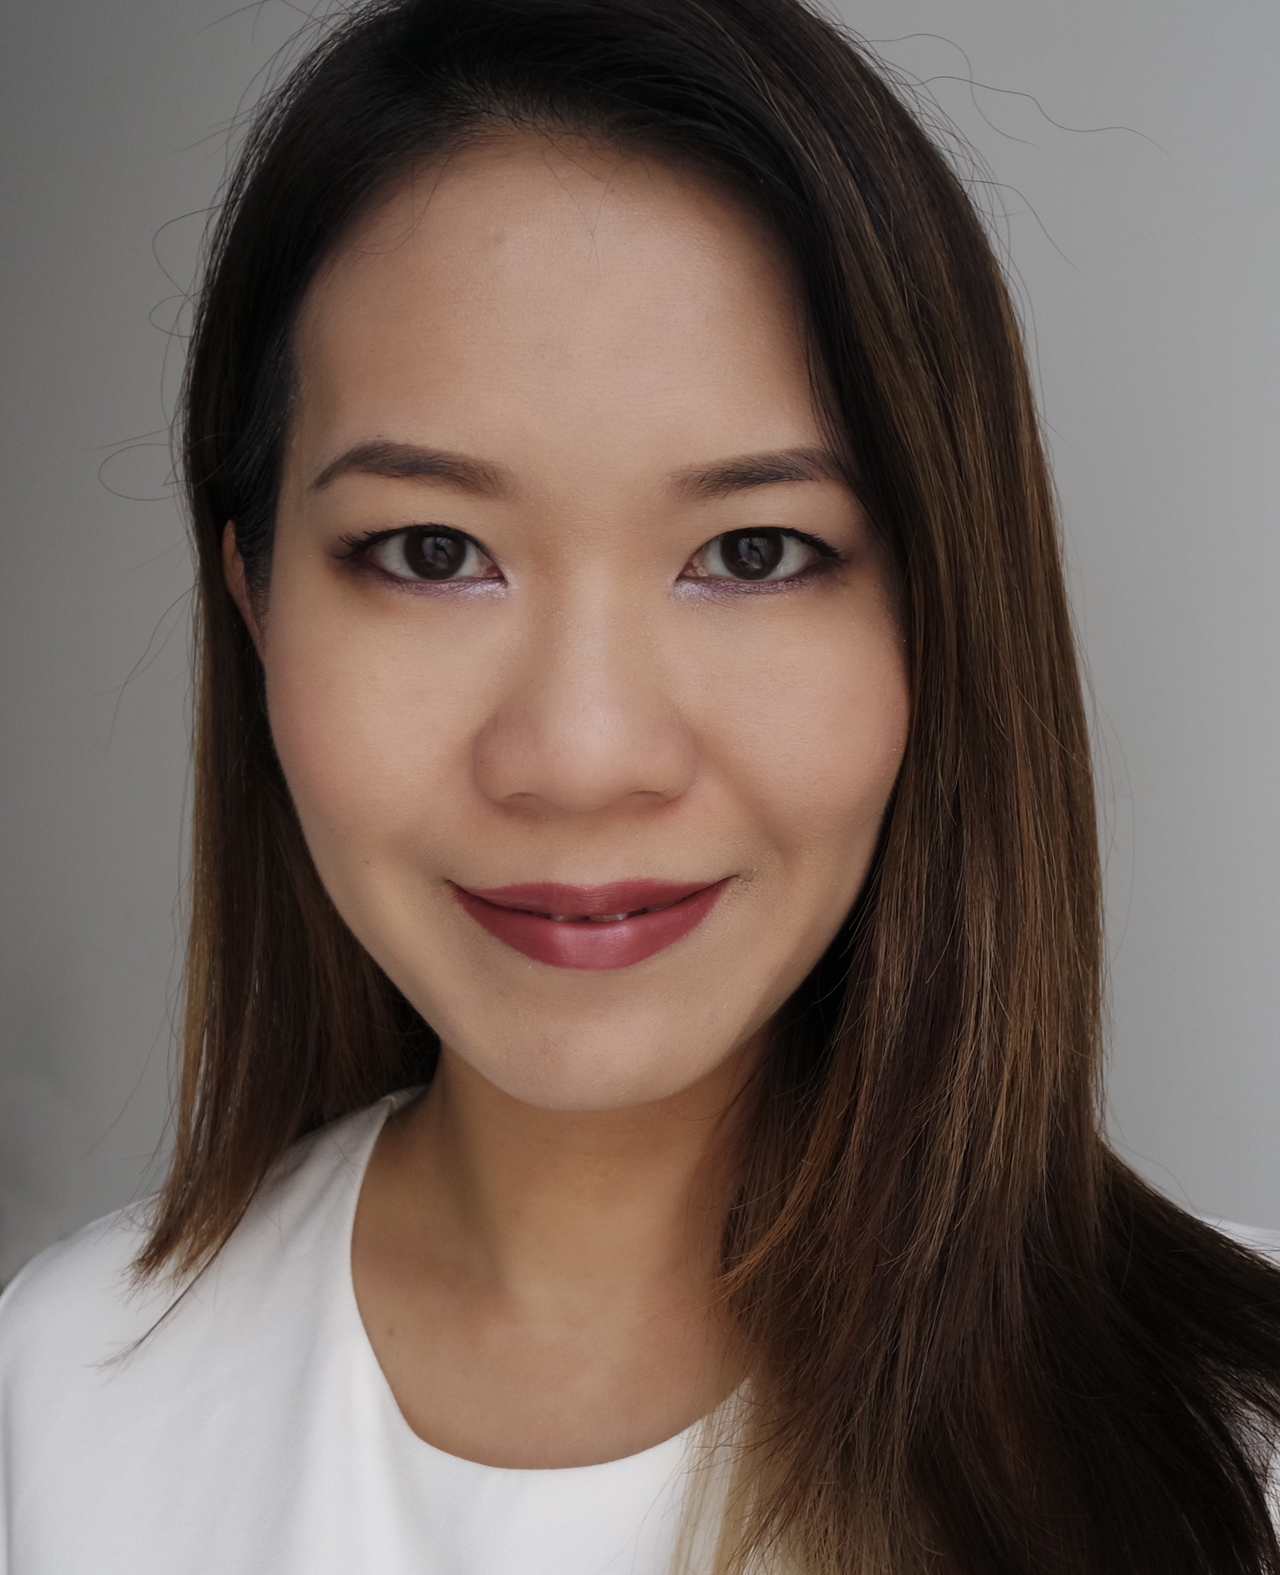 Tom Ford Lip Contour Duo - Show it Off MOTD